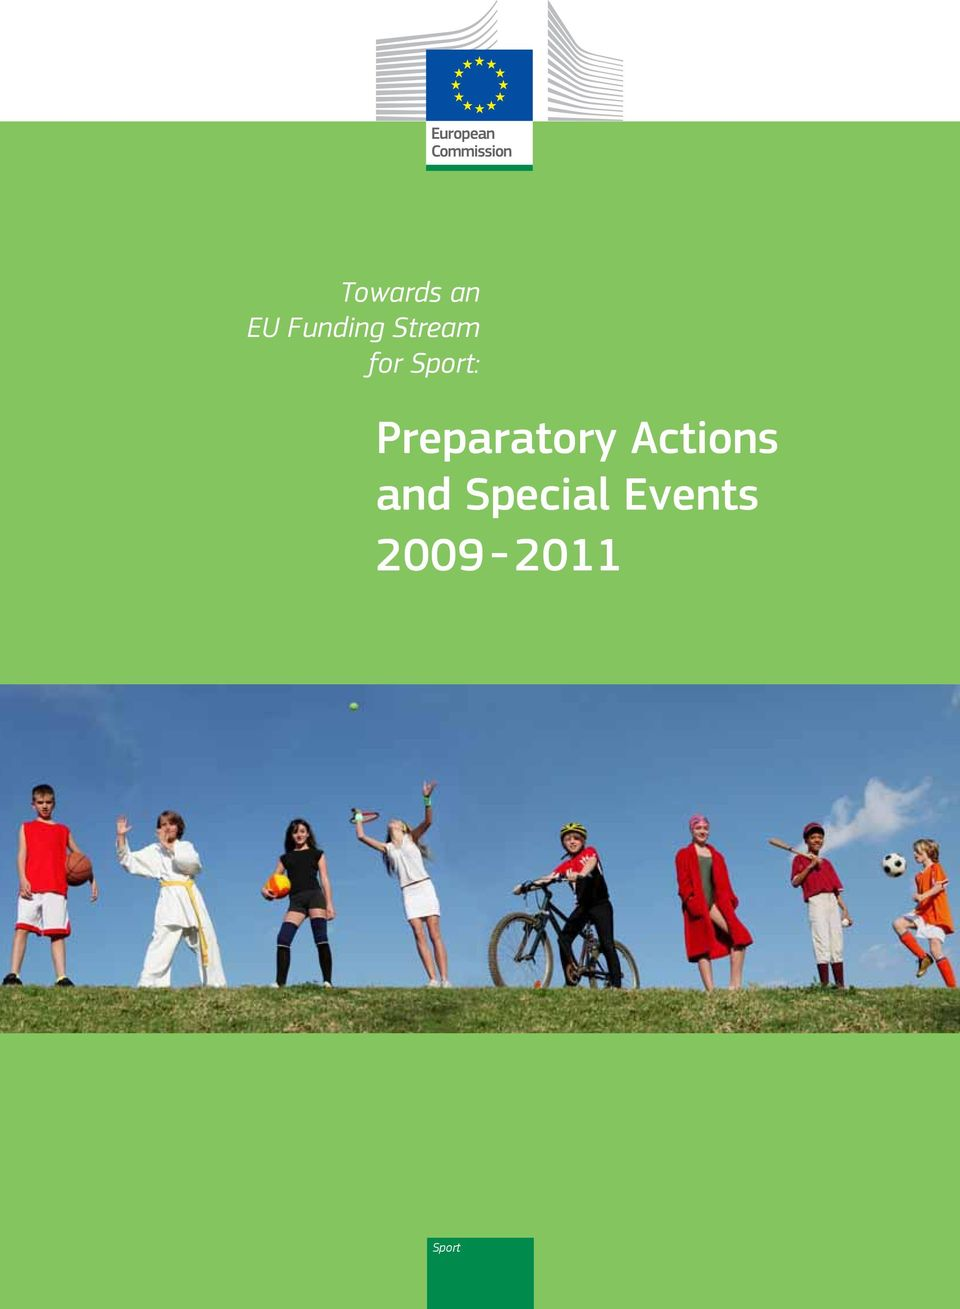 Preparatory Actions and